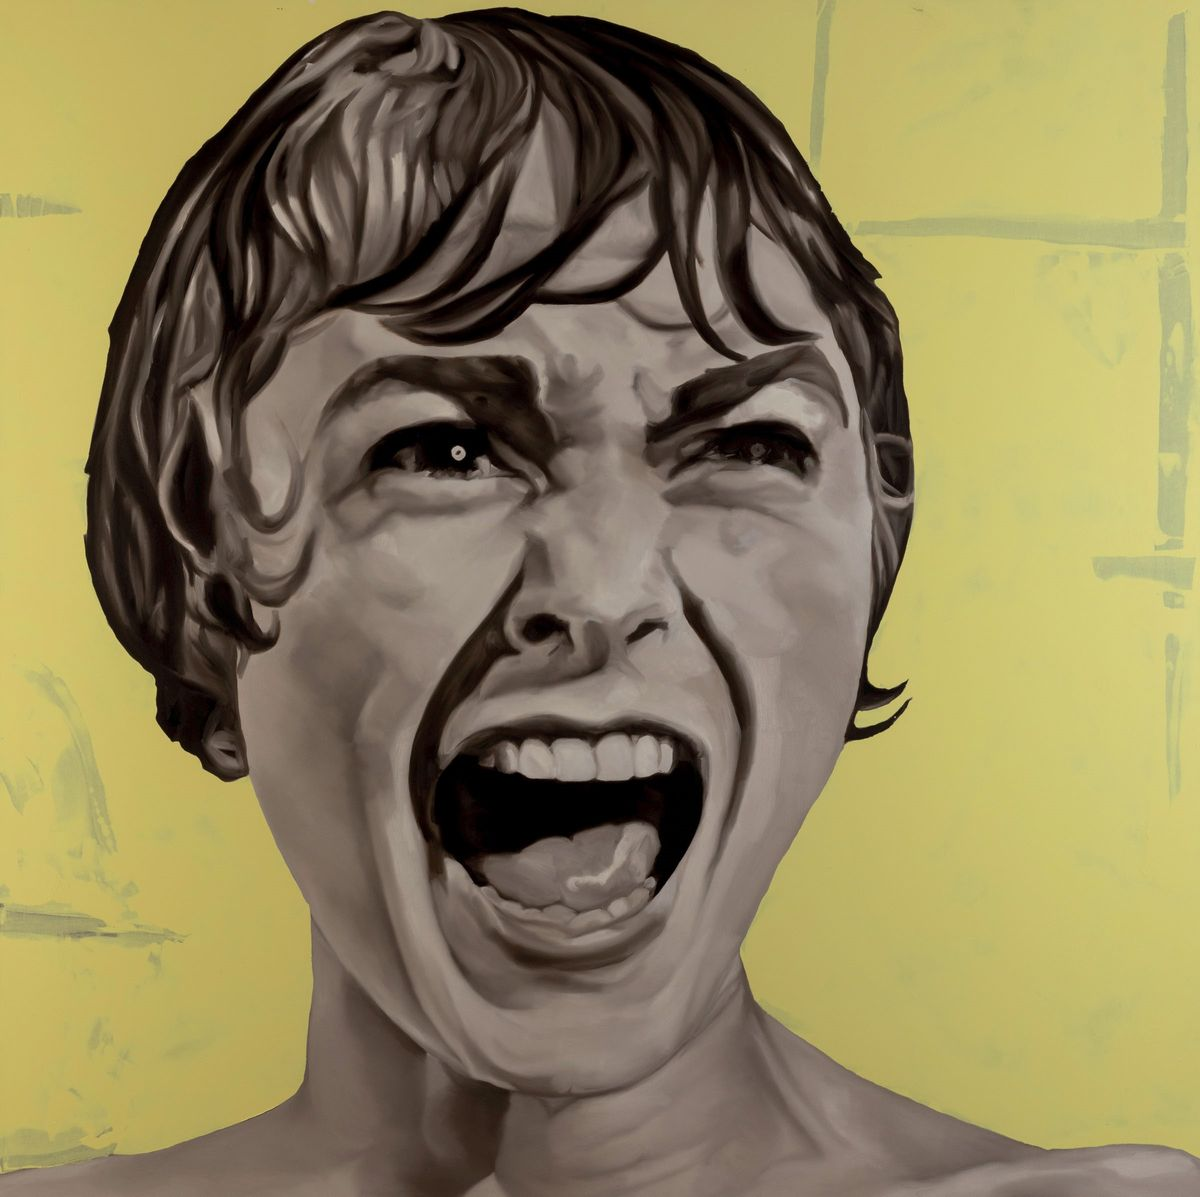 Scream by Barbara Nahmad, Federico Rui Arte Contemporanea